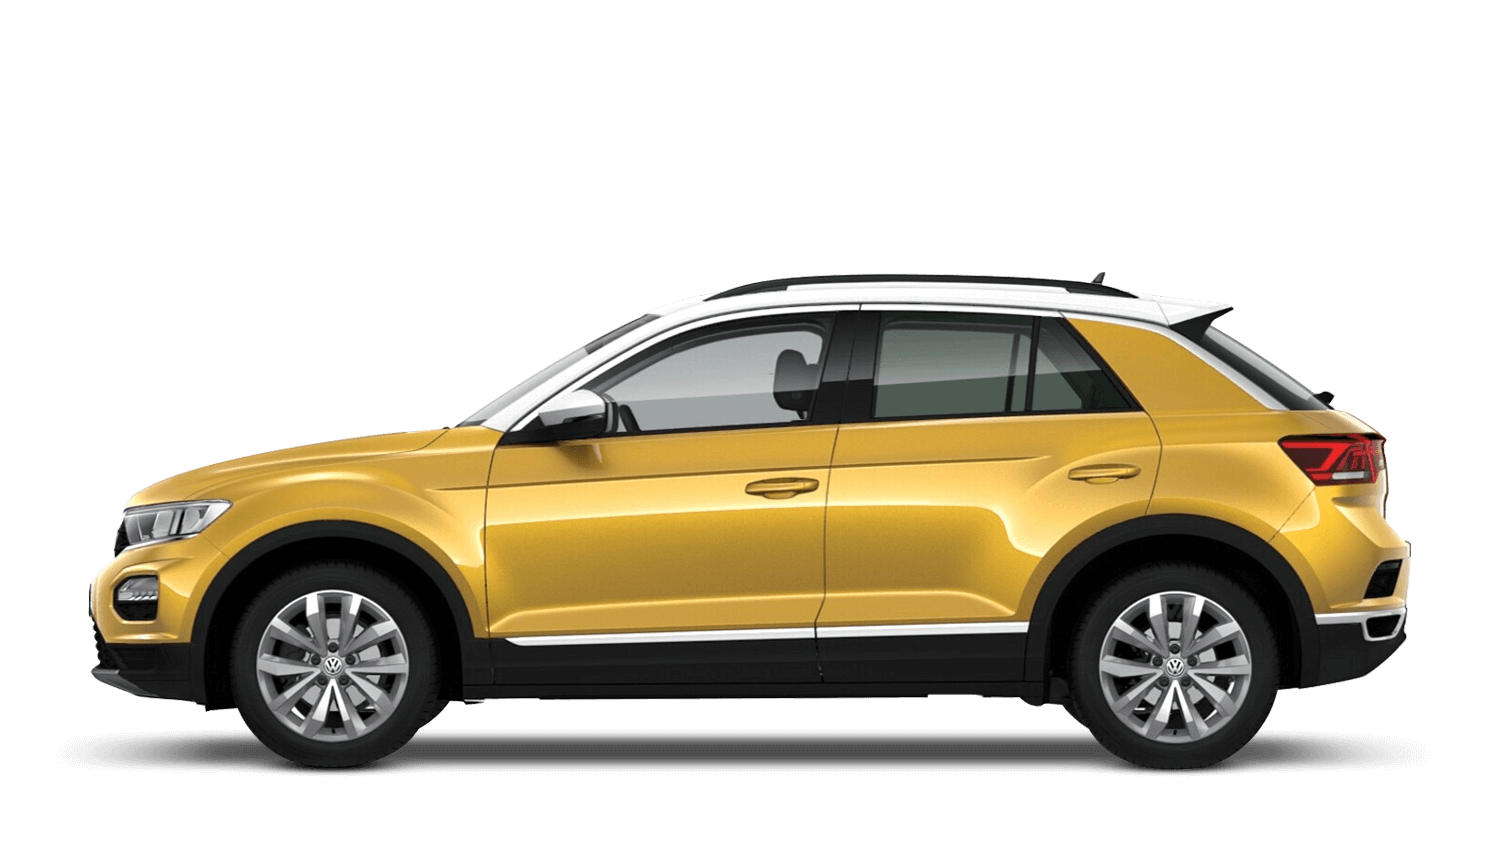 Turmeric Yellow with Pure White Roof (Metallic / Pearl) Volkswagen T Roc